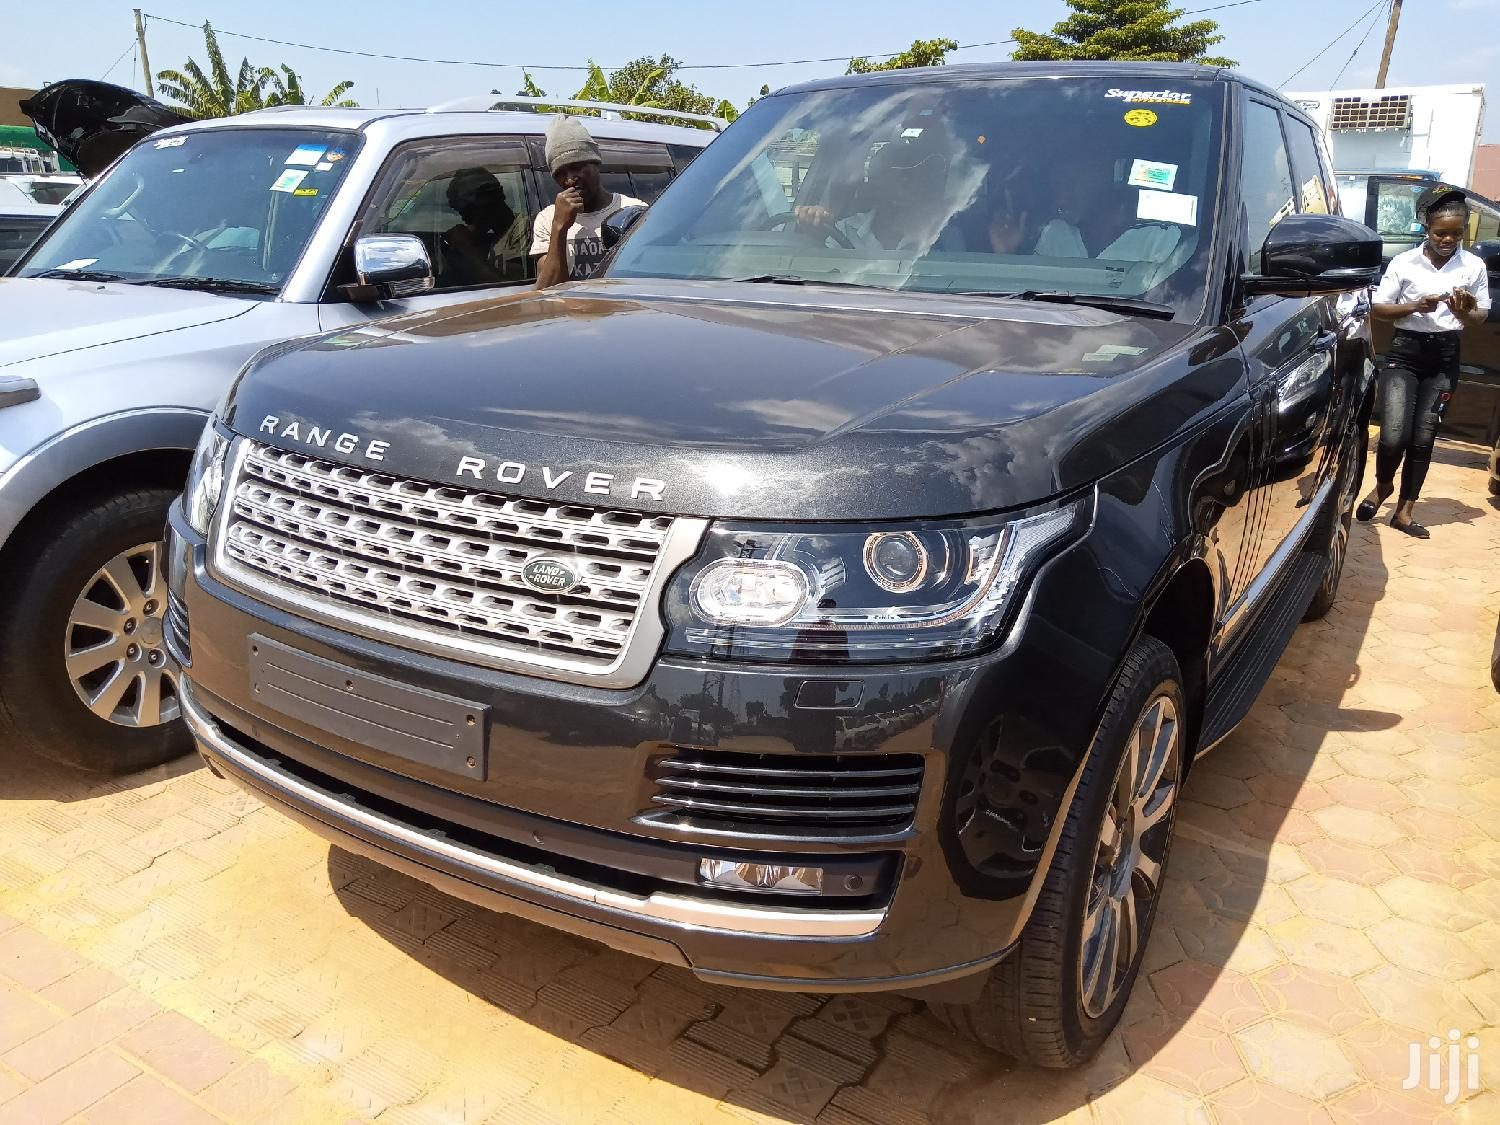 New Land Rover Range Rover Vogue 2016 Black